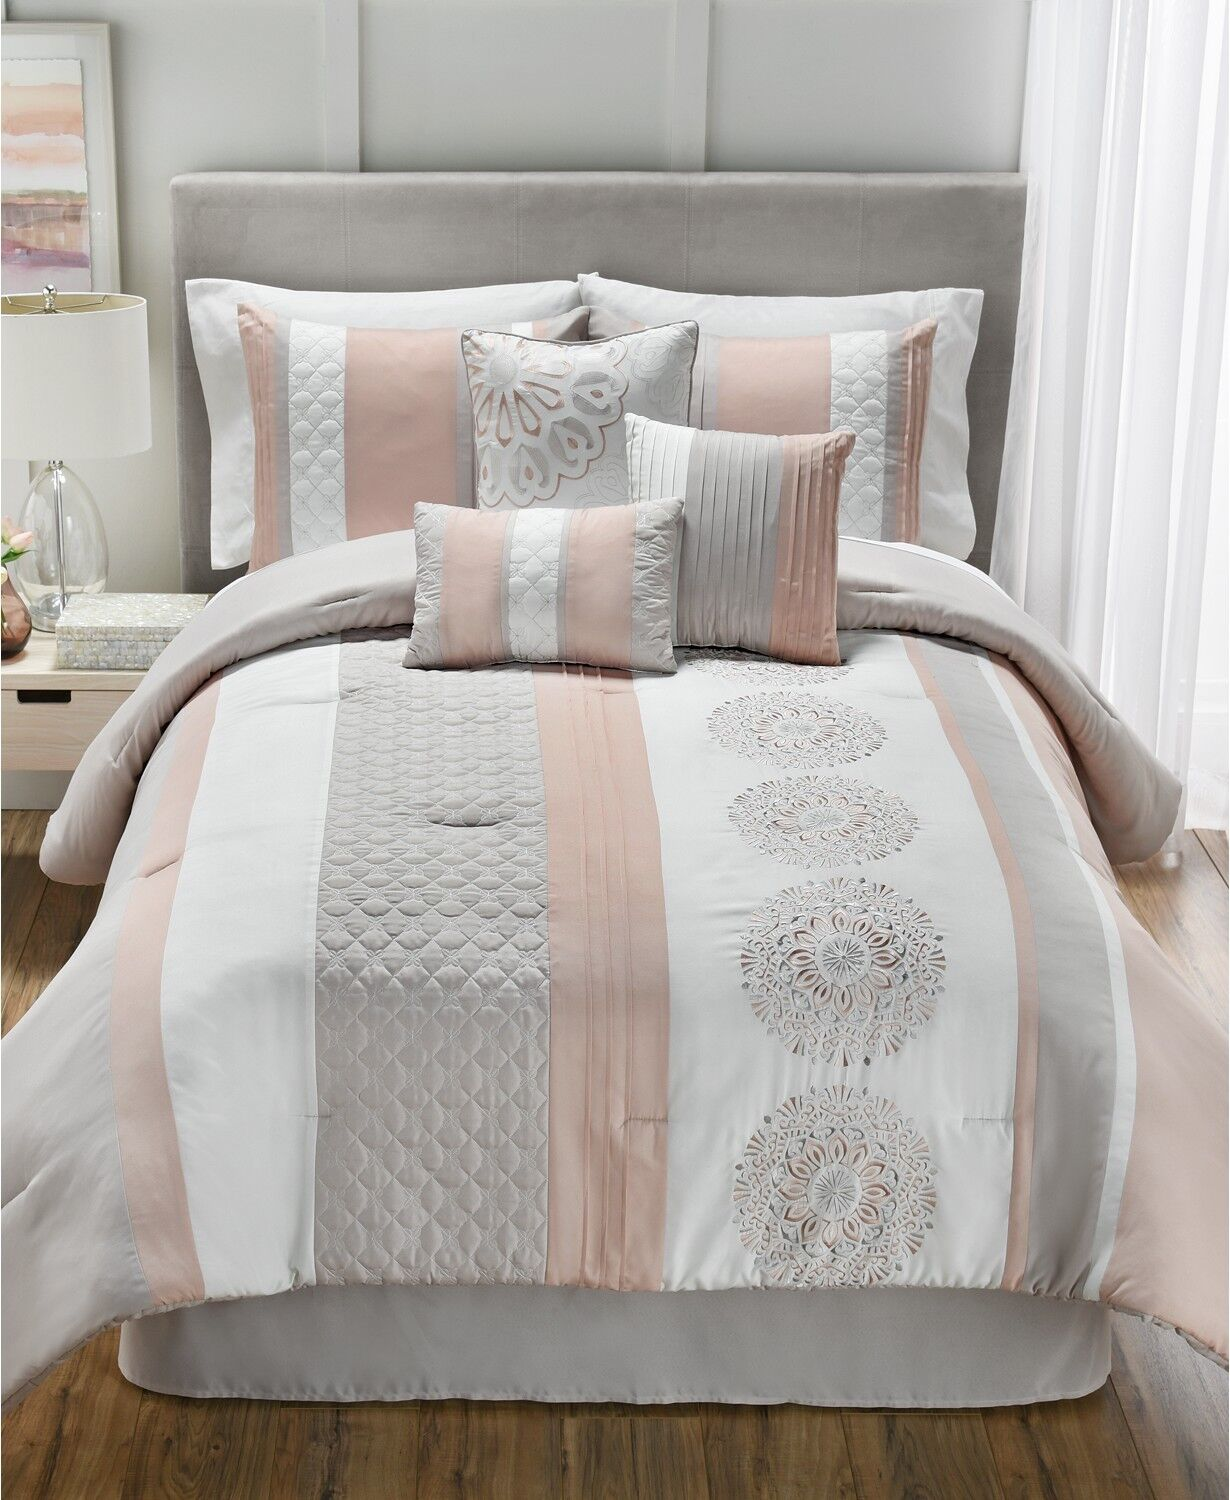 Hallmart Collectibles Crawford Quilted 7 Piece KING Comforter Set Bedding i1597